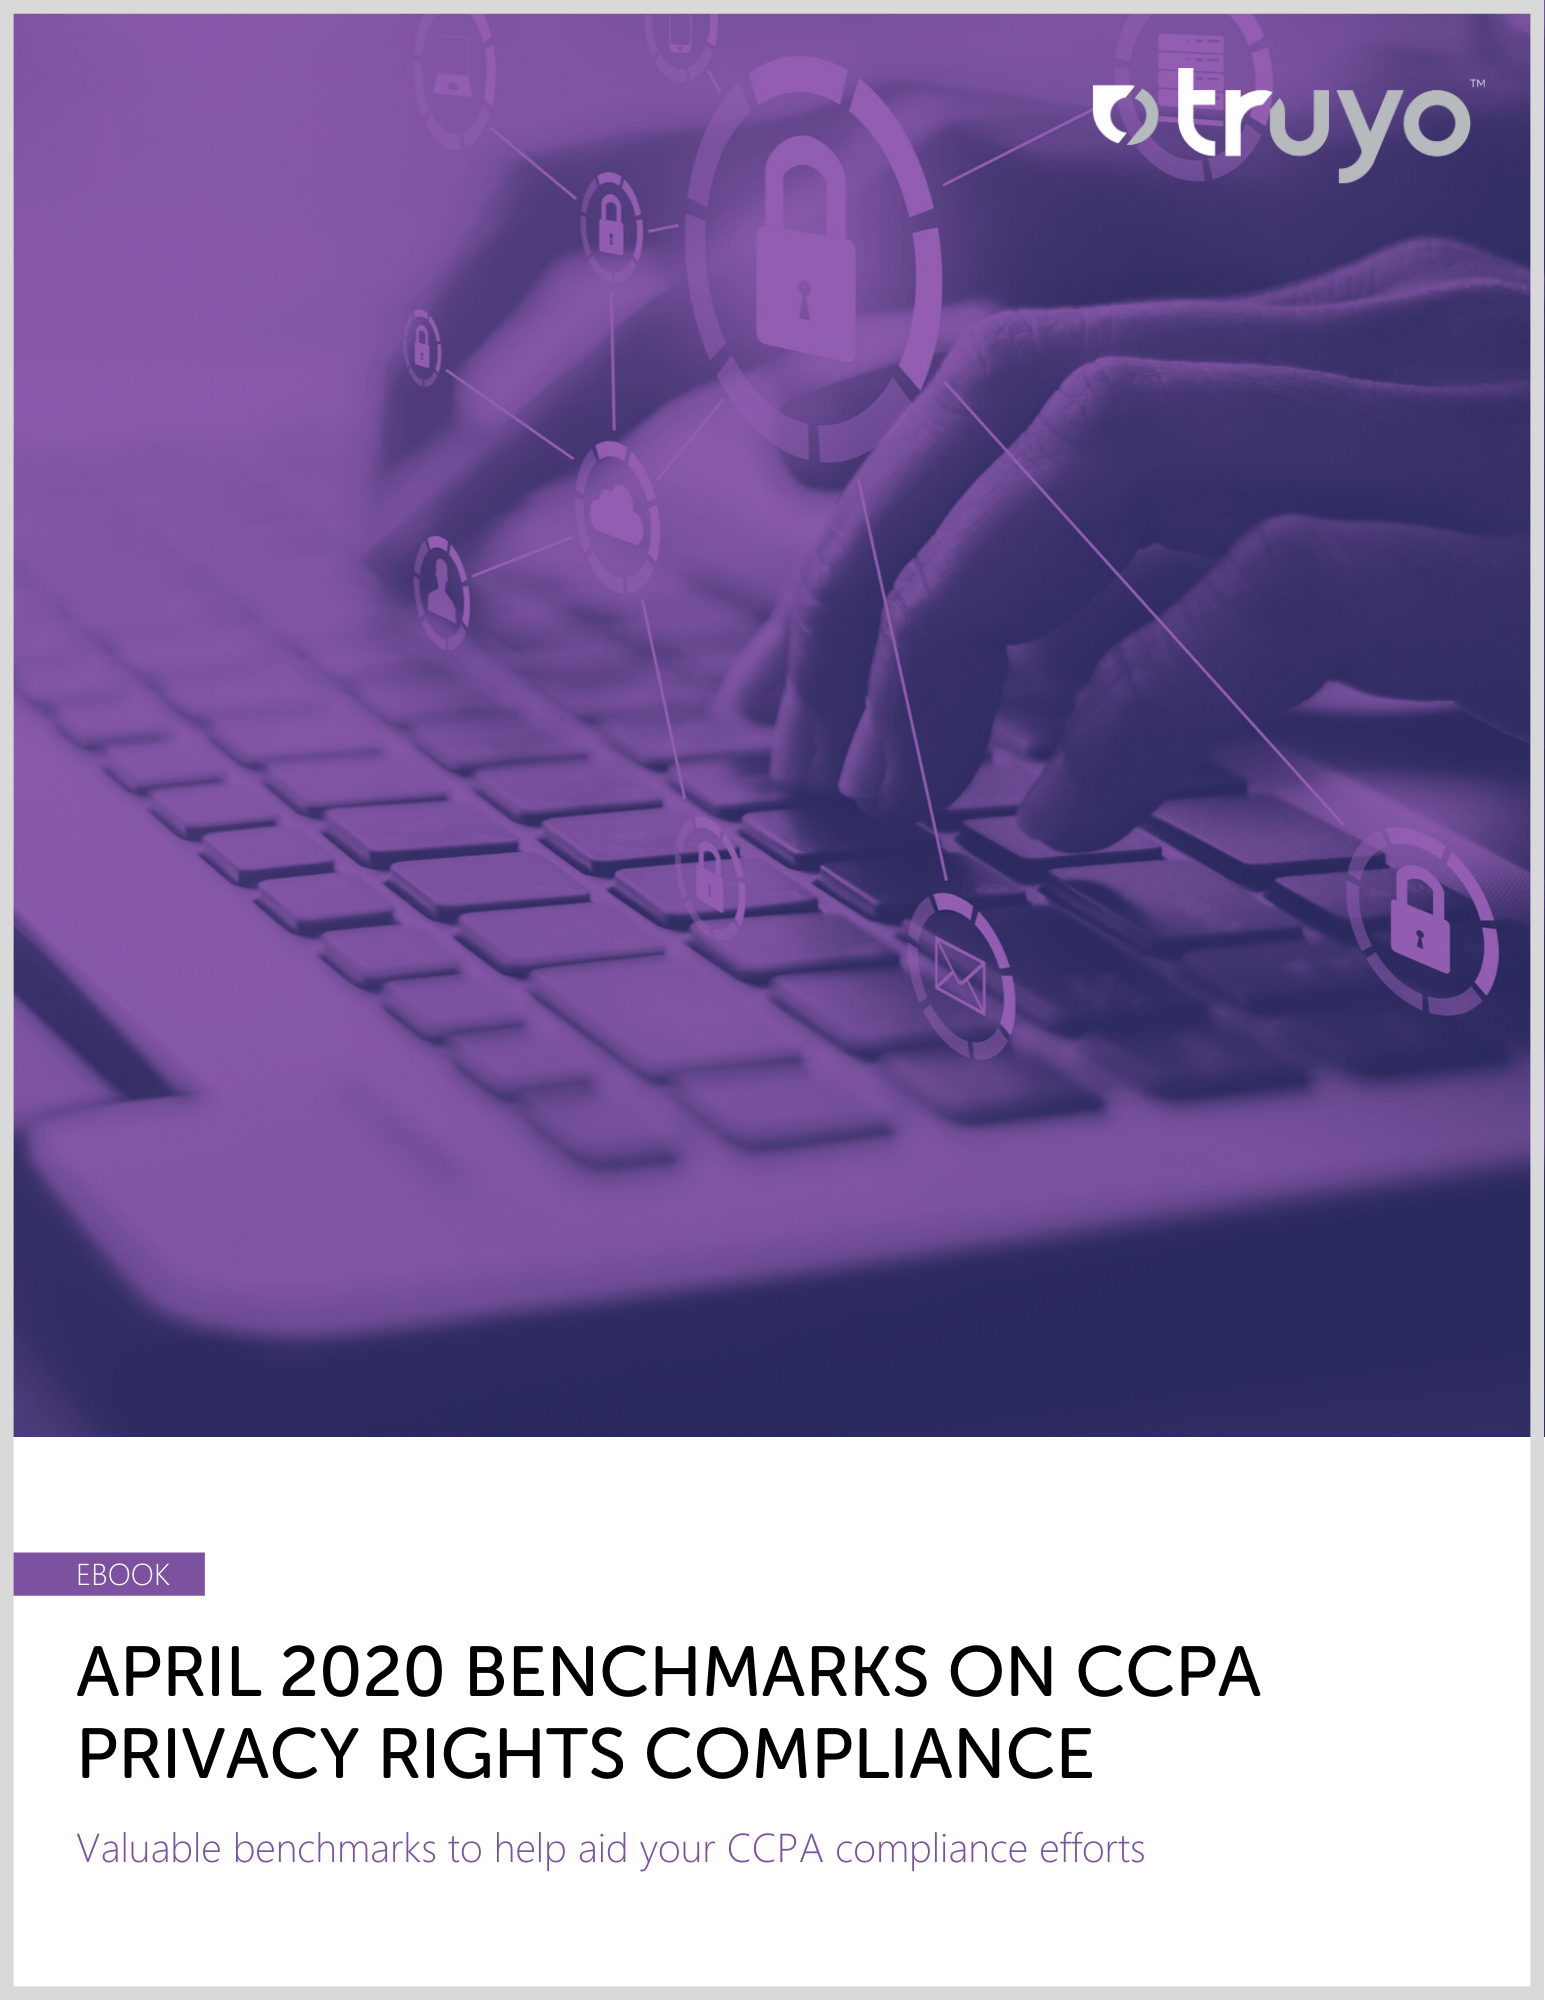 April 2020 Benchmarks on CCPA Privacy Rights Compliance (1)